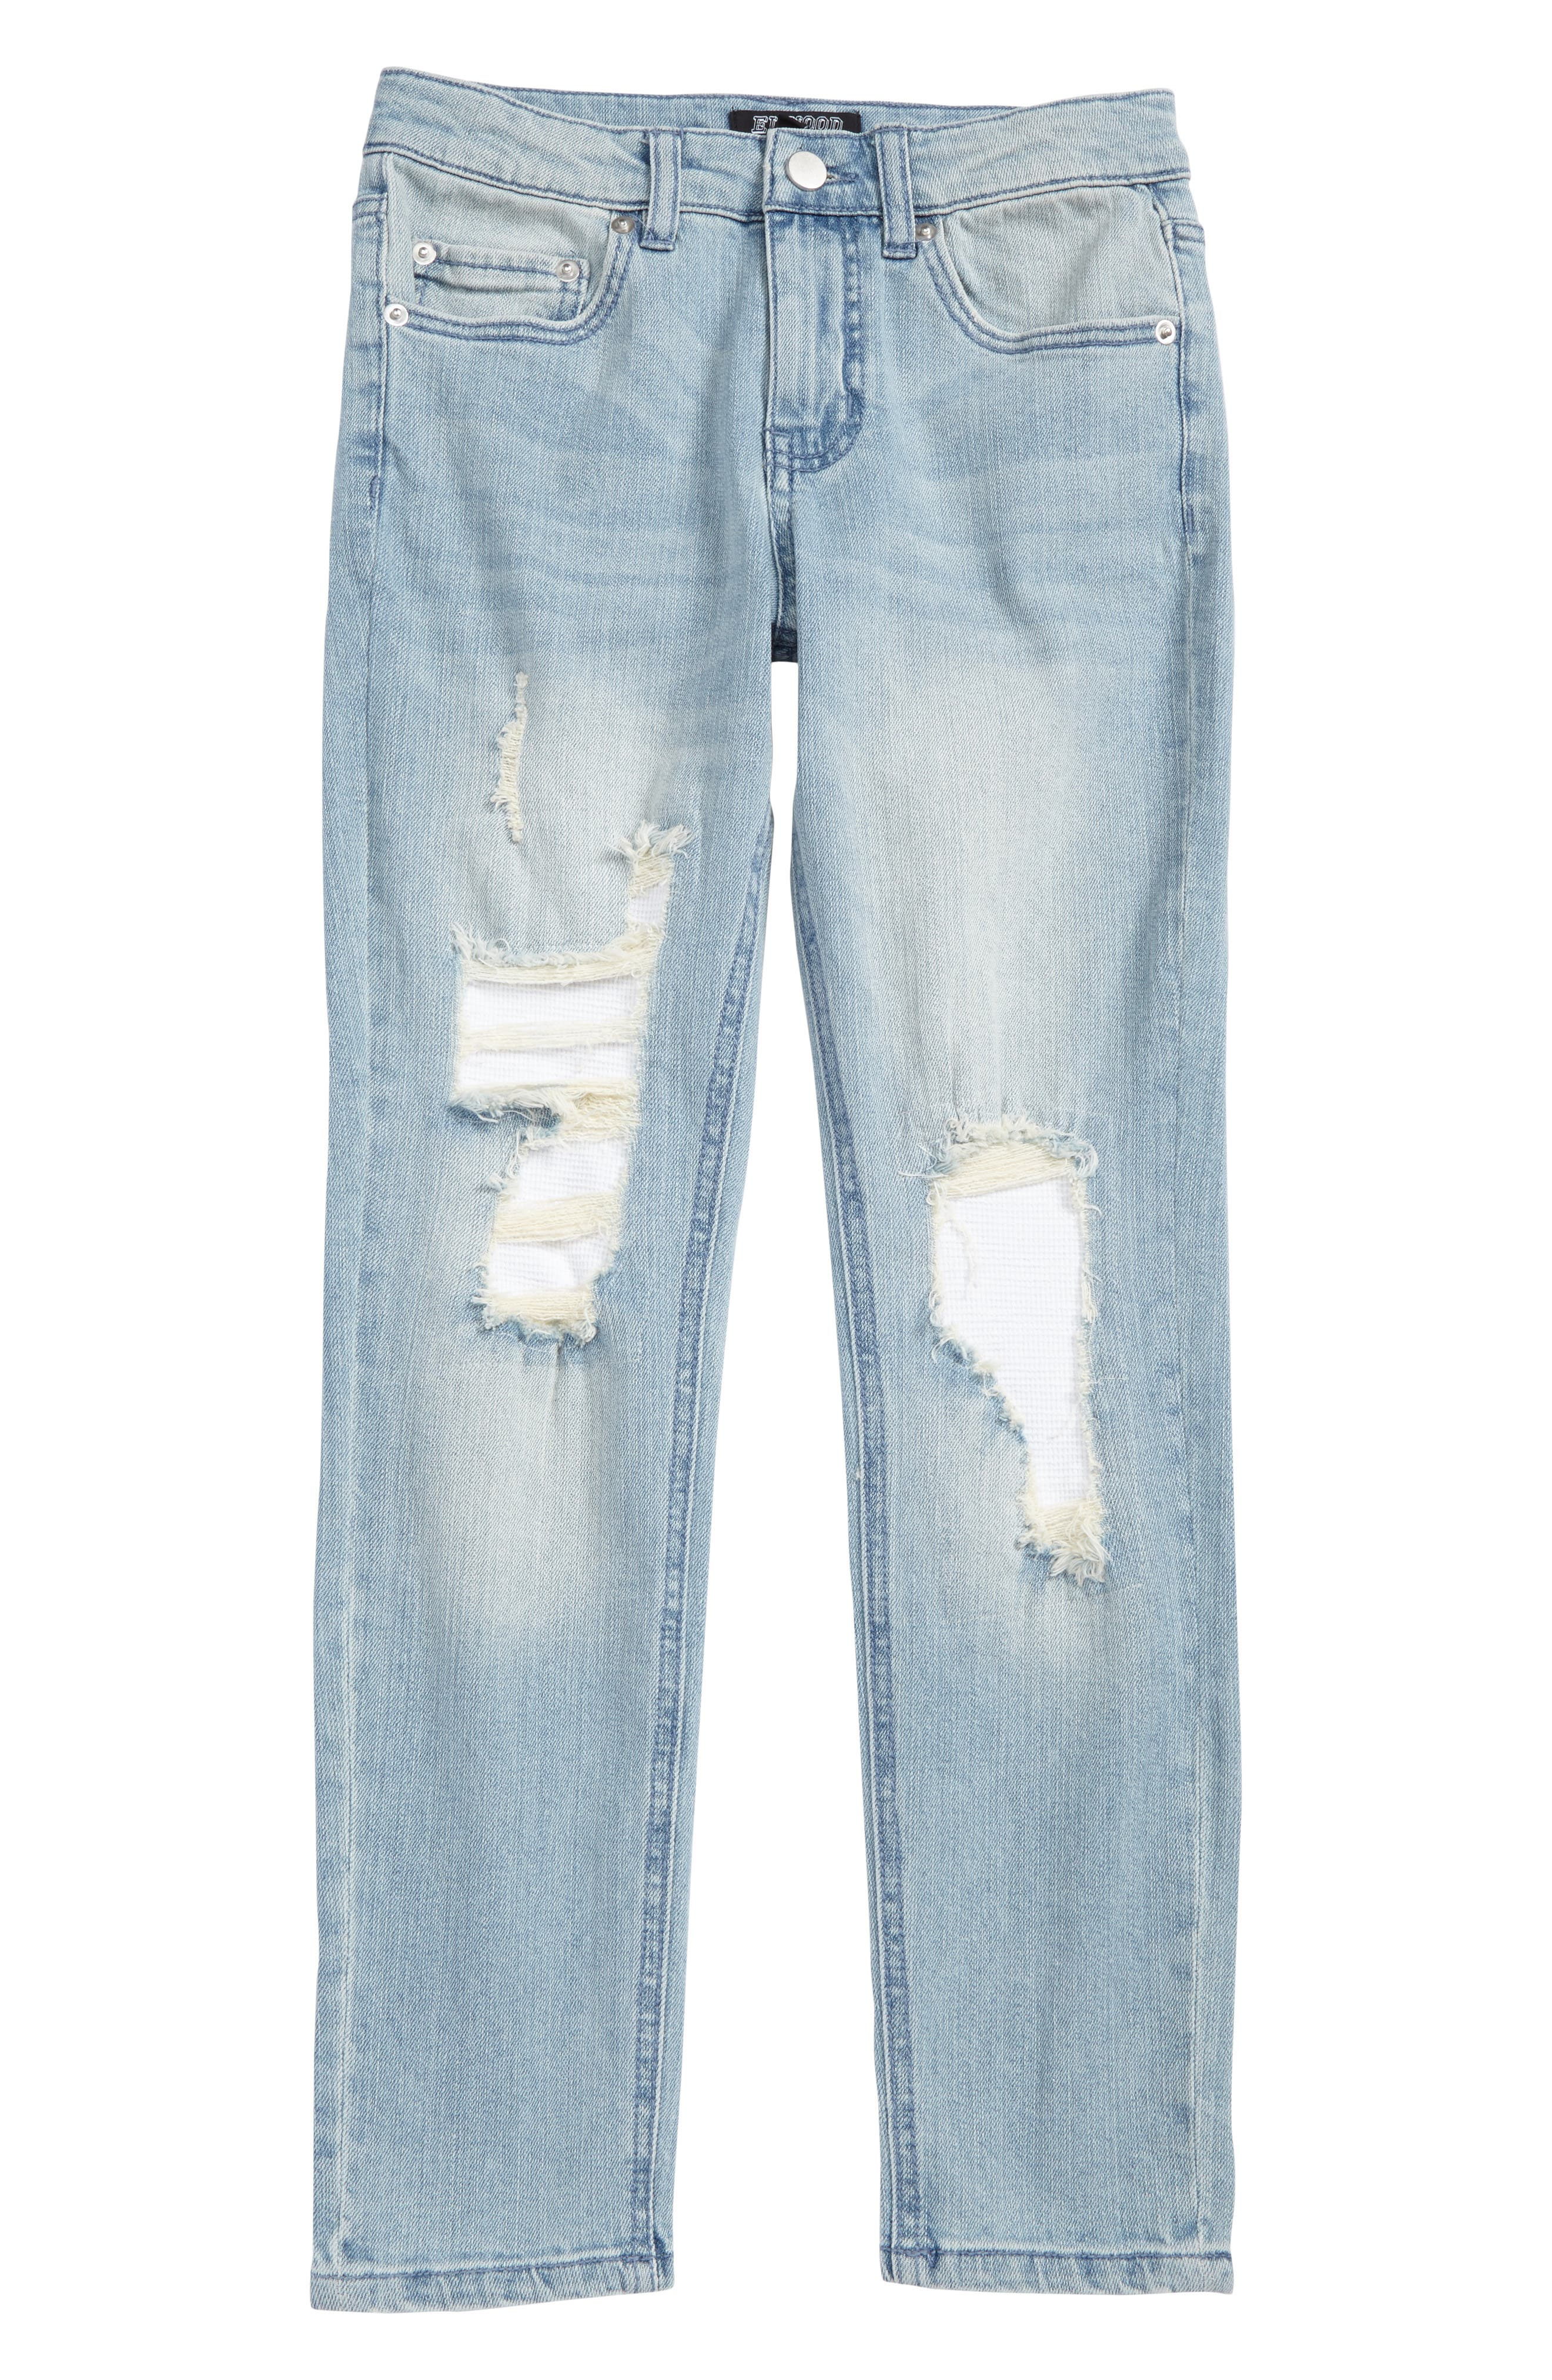 Rip & Repair Straight Leg Jeans,                             Main thumbnail 1, color,                             460